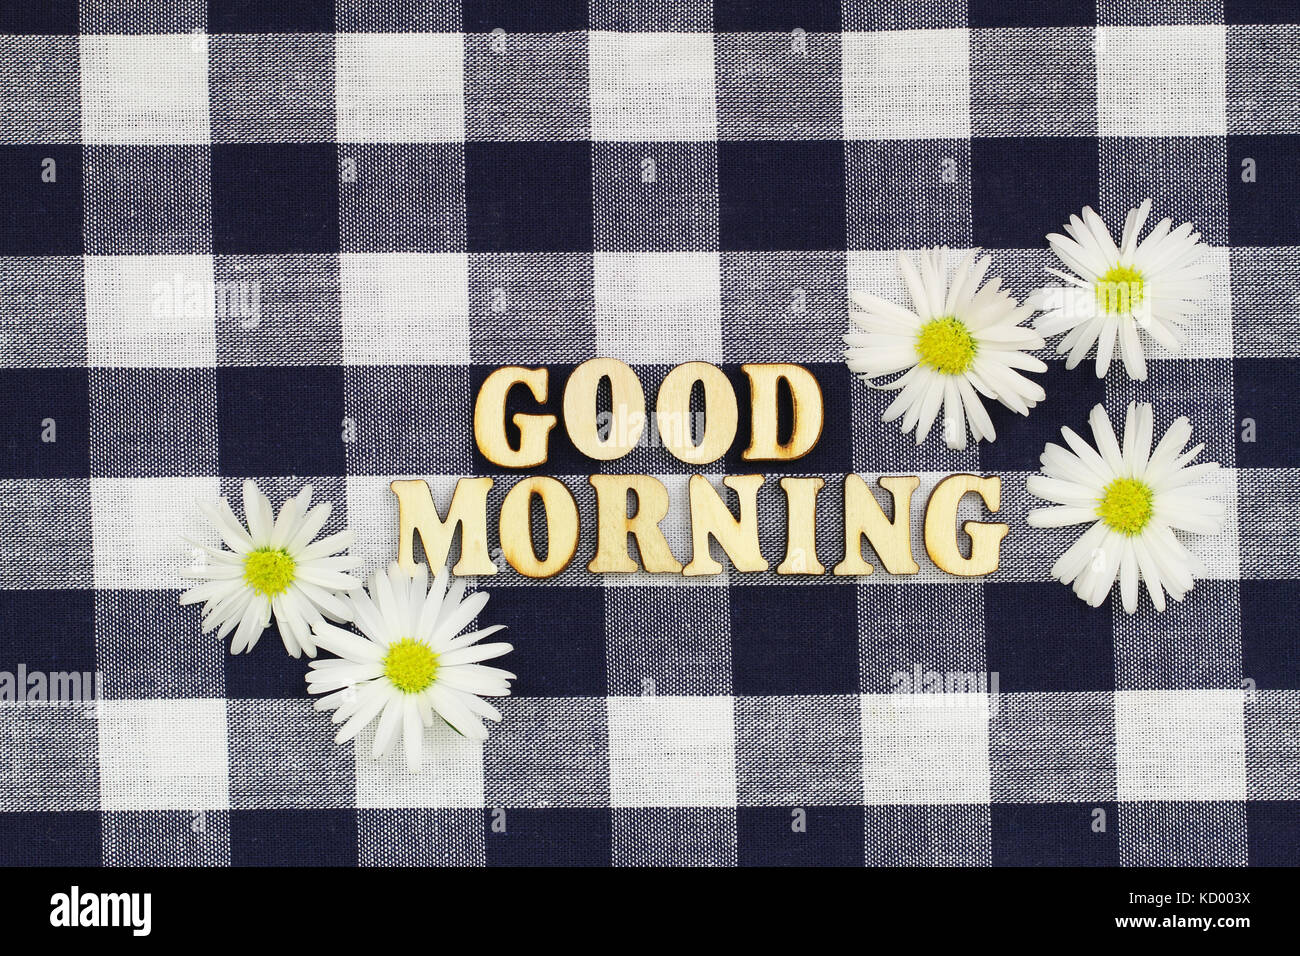 Good morning daisy stock photos good morning daisy stock images good morning written with wooden letters on checkered cloth with white daisy flowers stock image izmirmasajfo